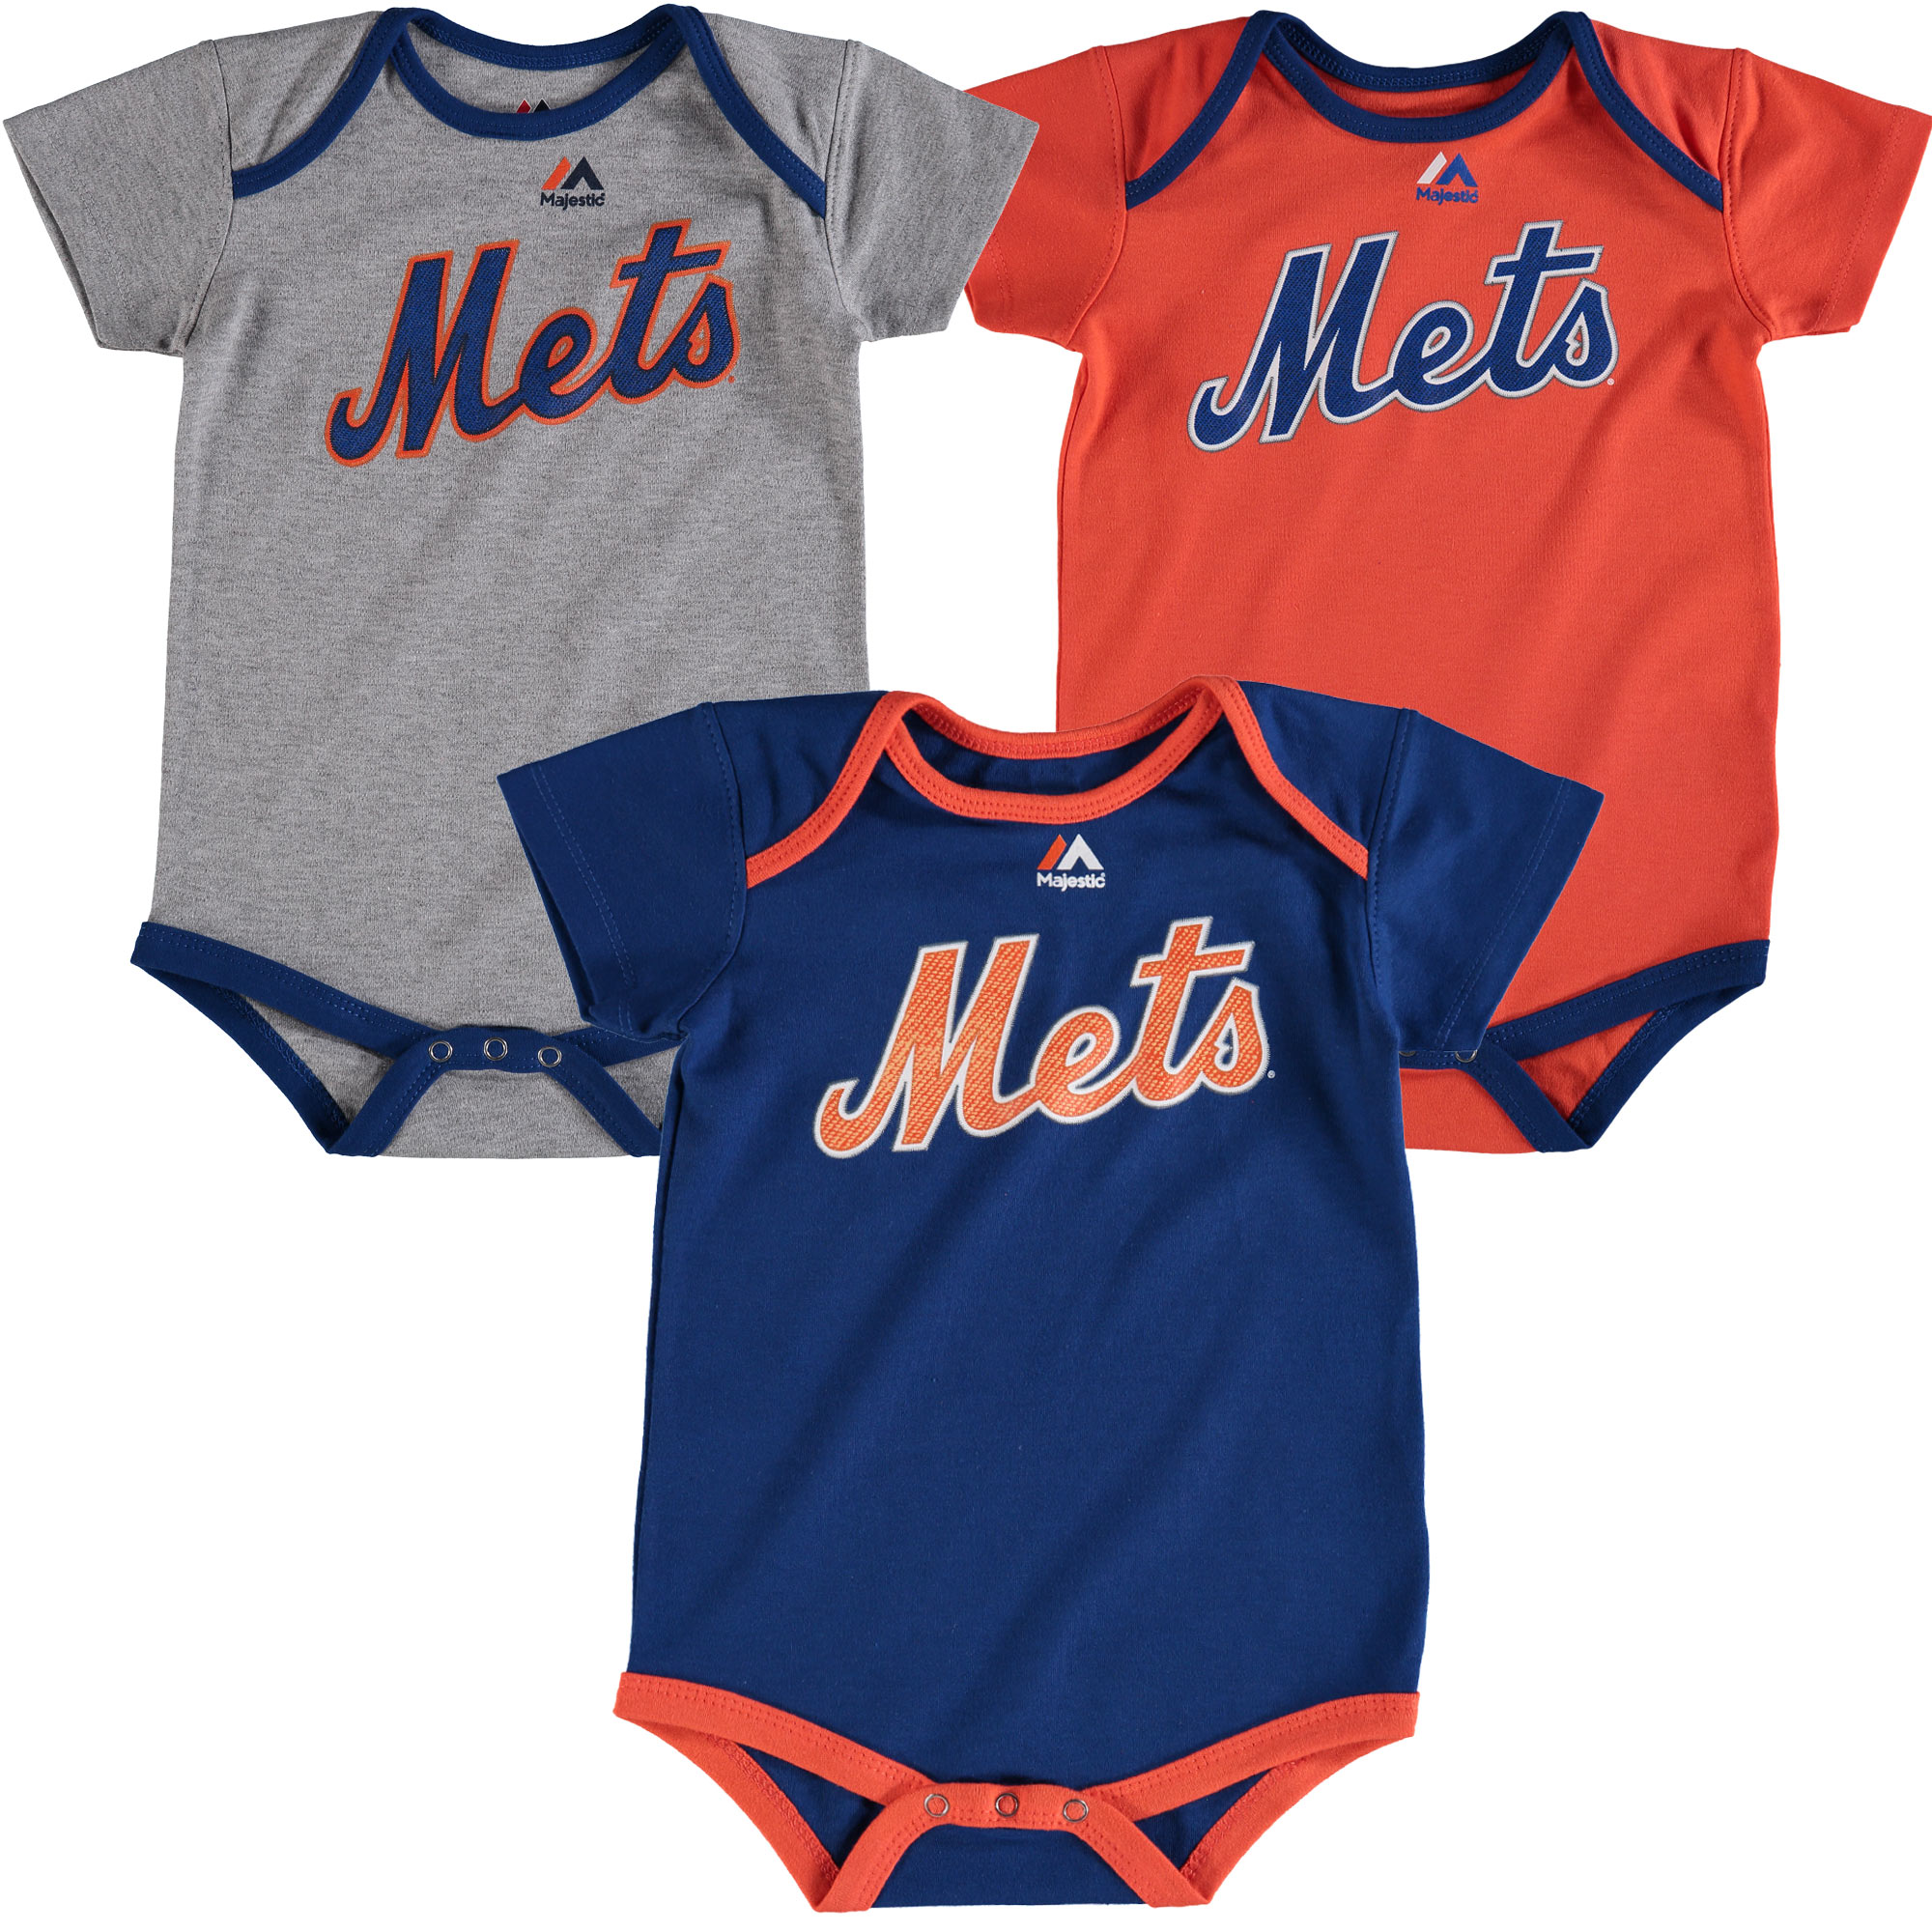 Noah Syndergaard New York Mets Majestic Infant Name & Number 3-Pack Bodysuit Set - Orange/Royal/Gray - 24 MO